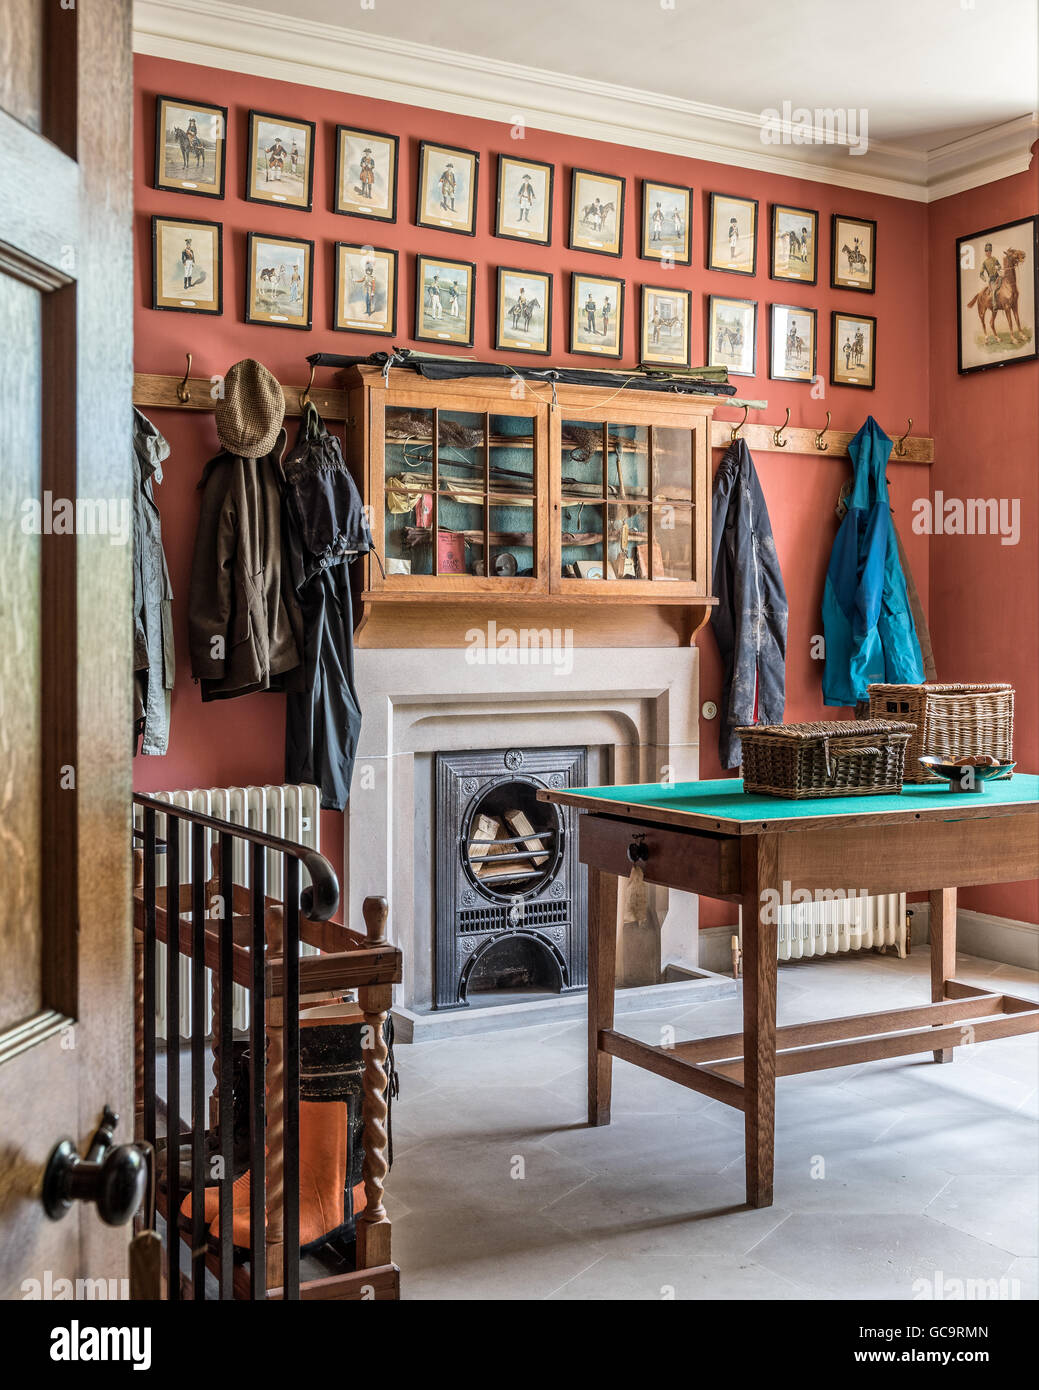 Framed military uniform prints line the wall above a former gun cupboard in an old gun room with coat hooks and - Stock Image